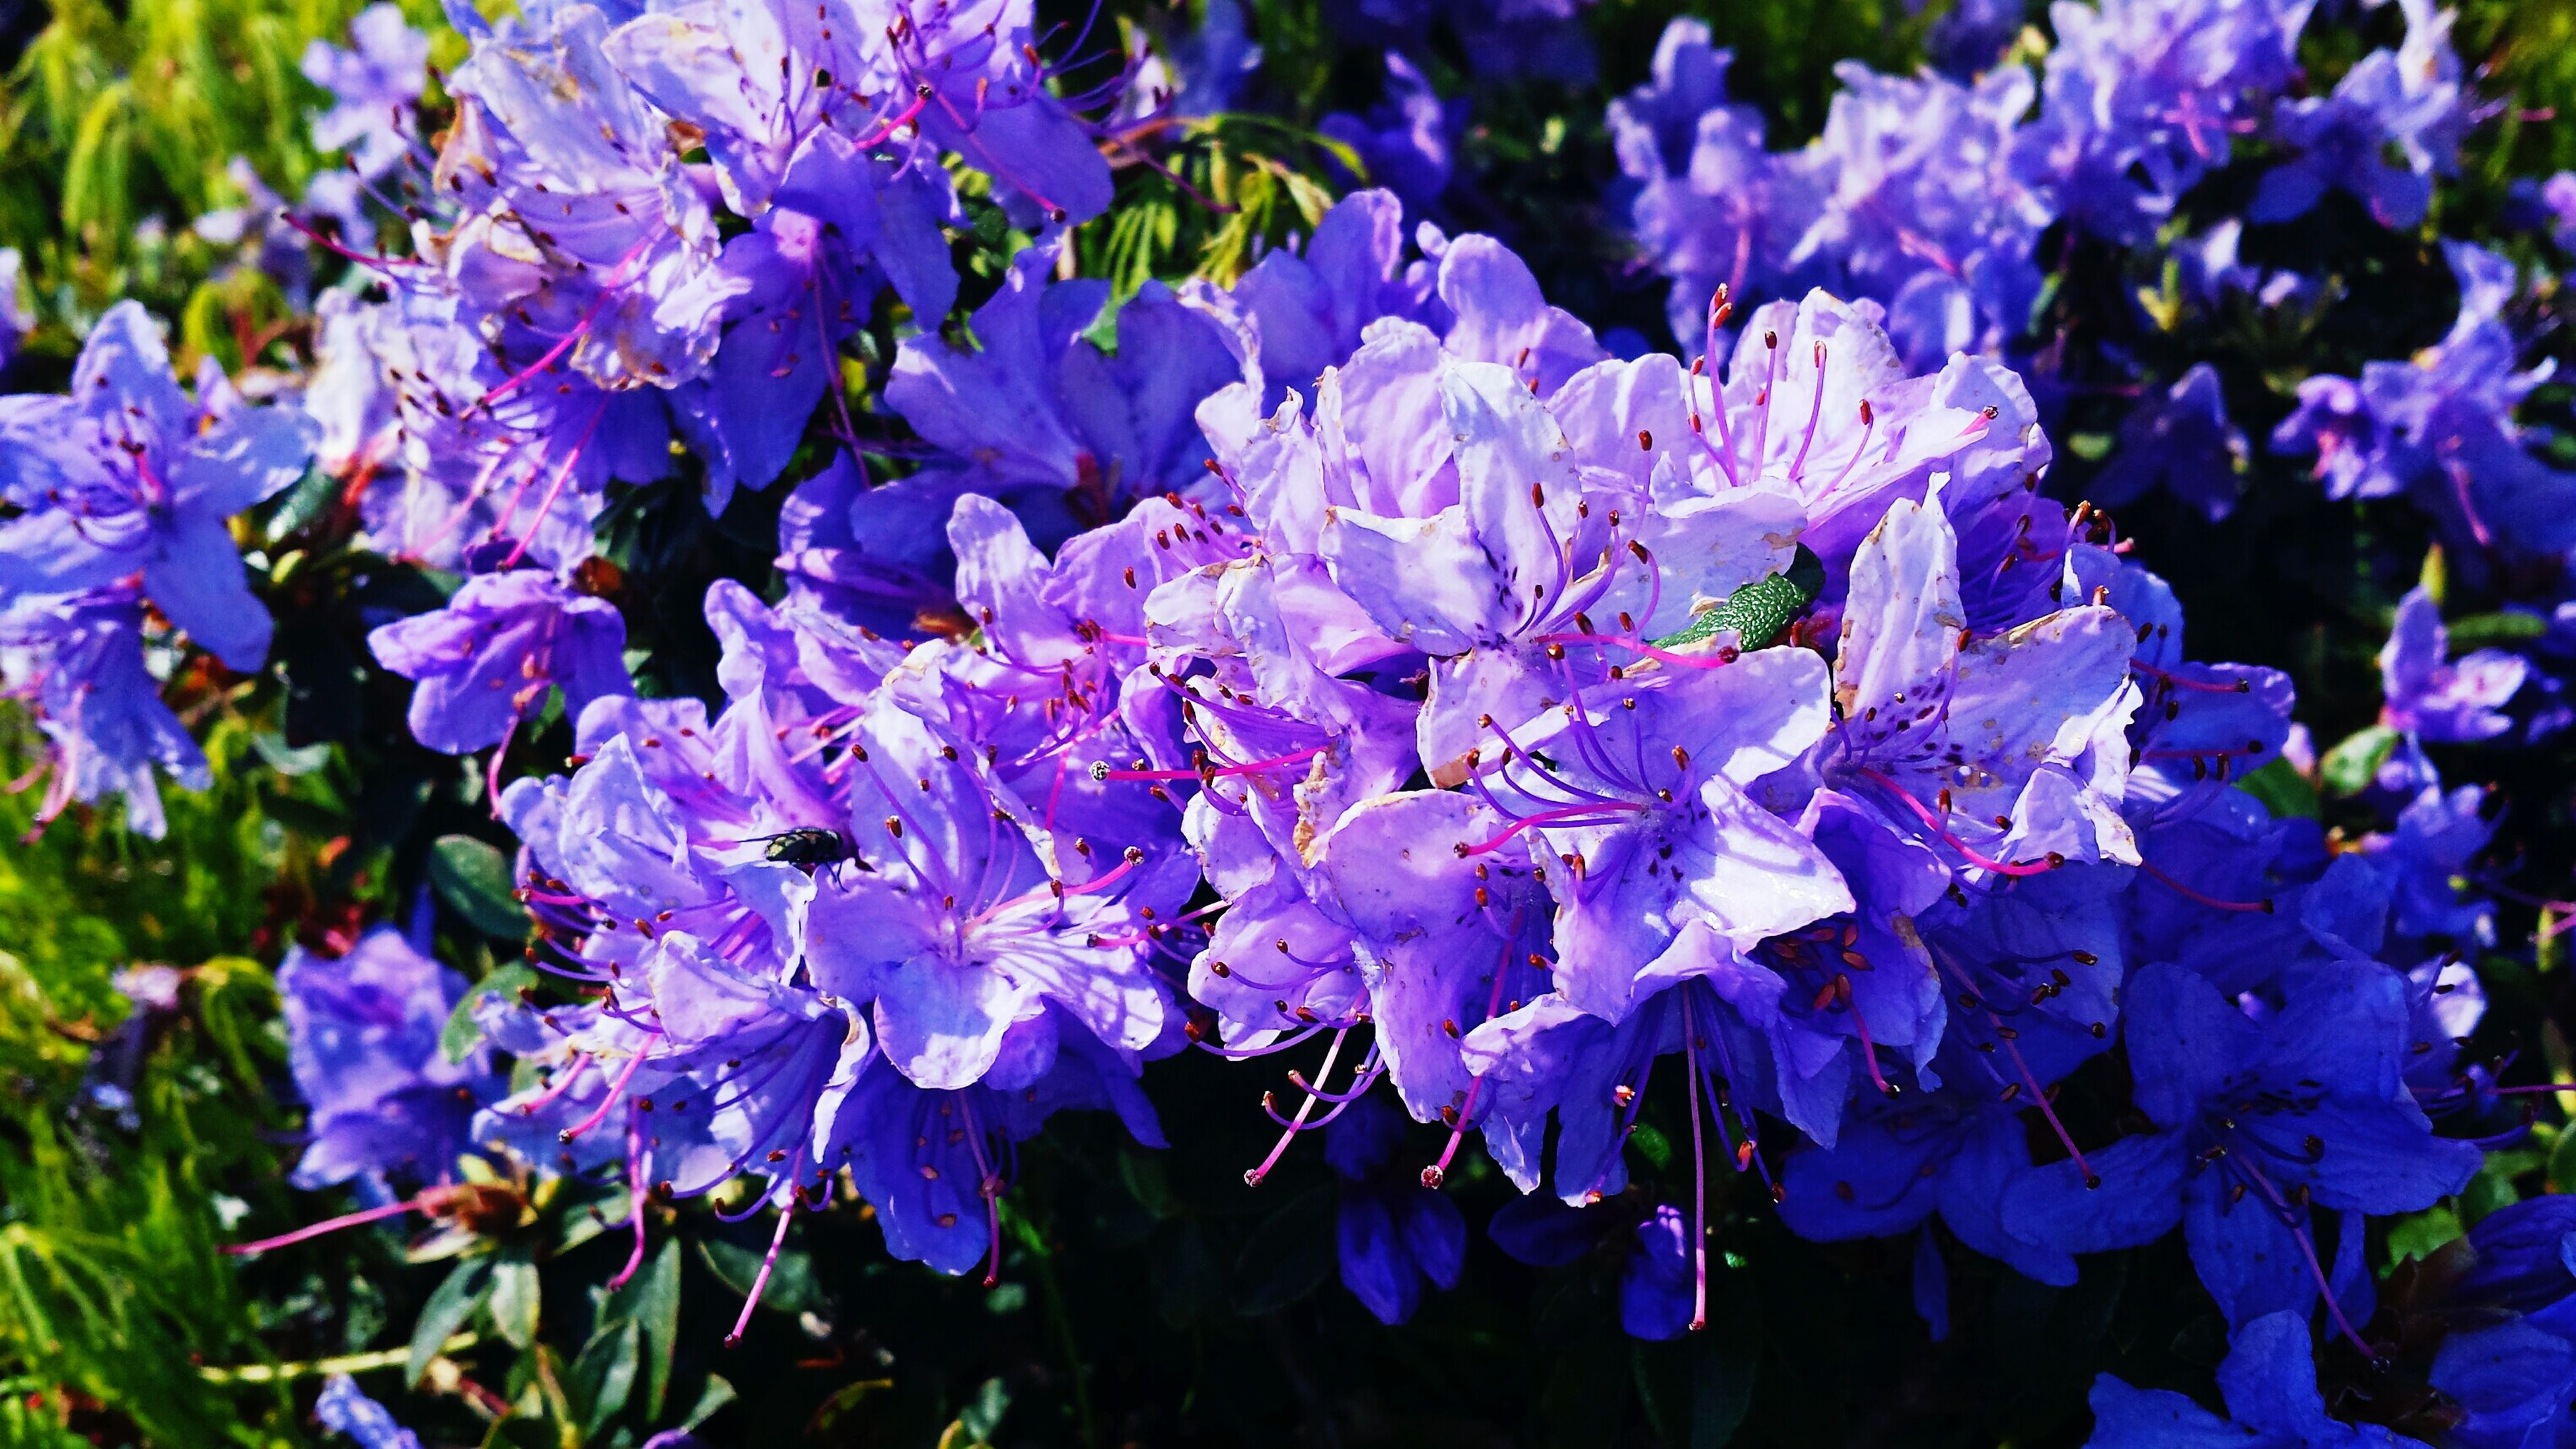 flower, purple, freshness, fragility, petal, growth, beauty in nature, flower head, plant, blooming, nature, close-up, in bloom, high angle view, park - man made space, hydrangea, focus on foreground, outdoors, no people, day